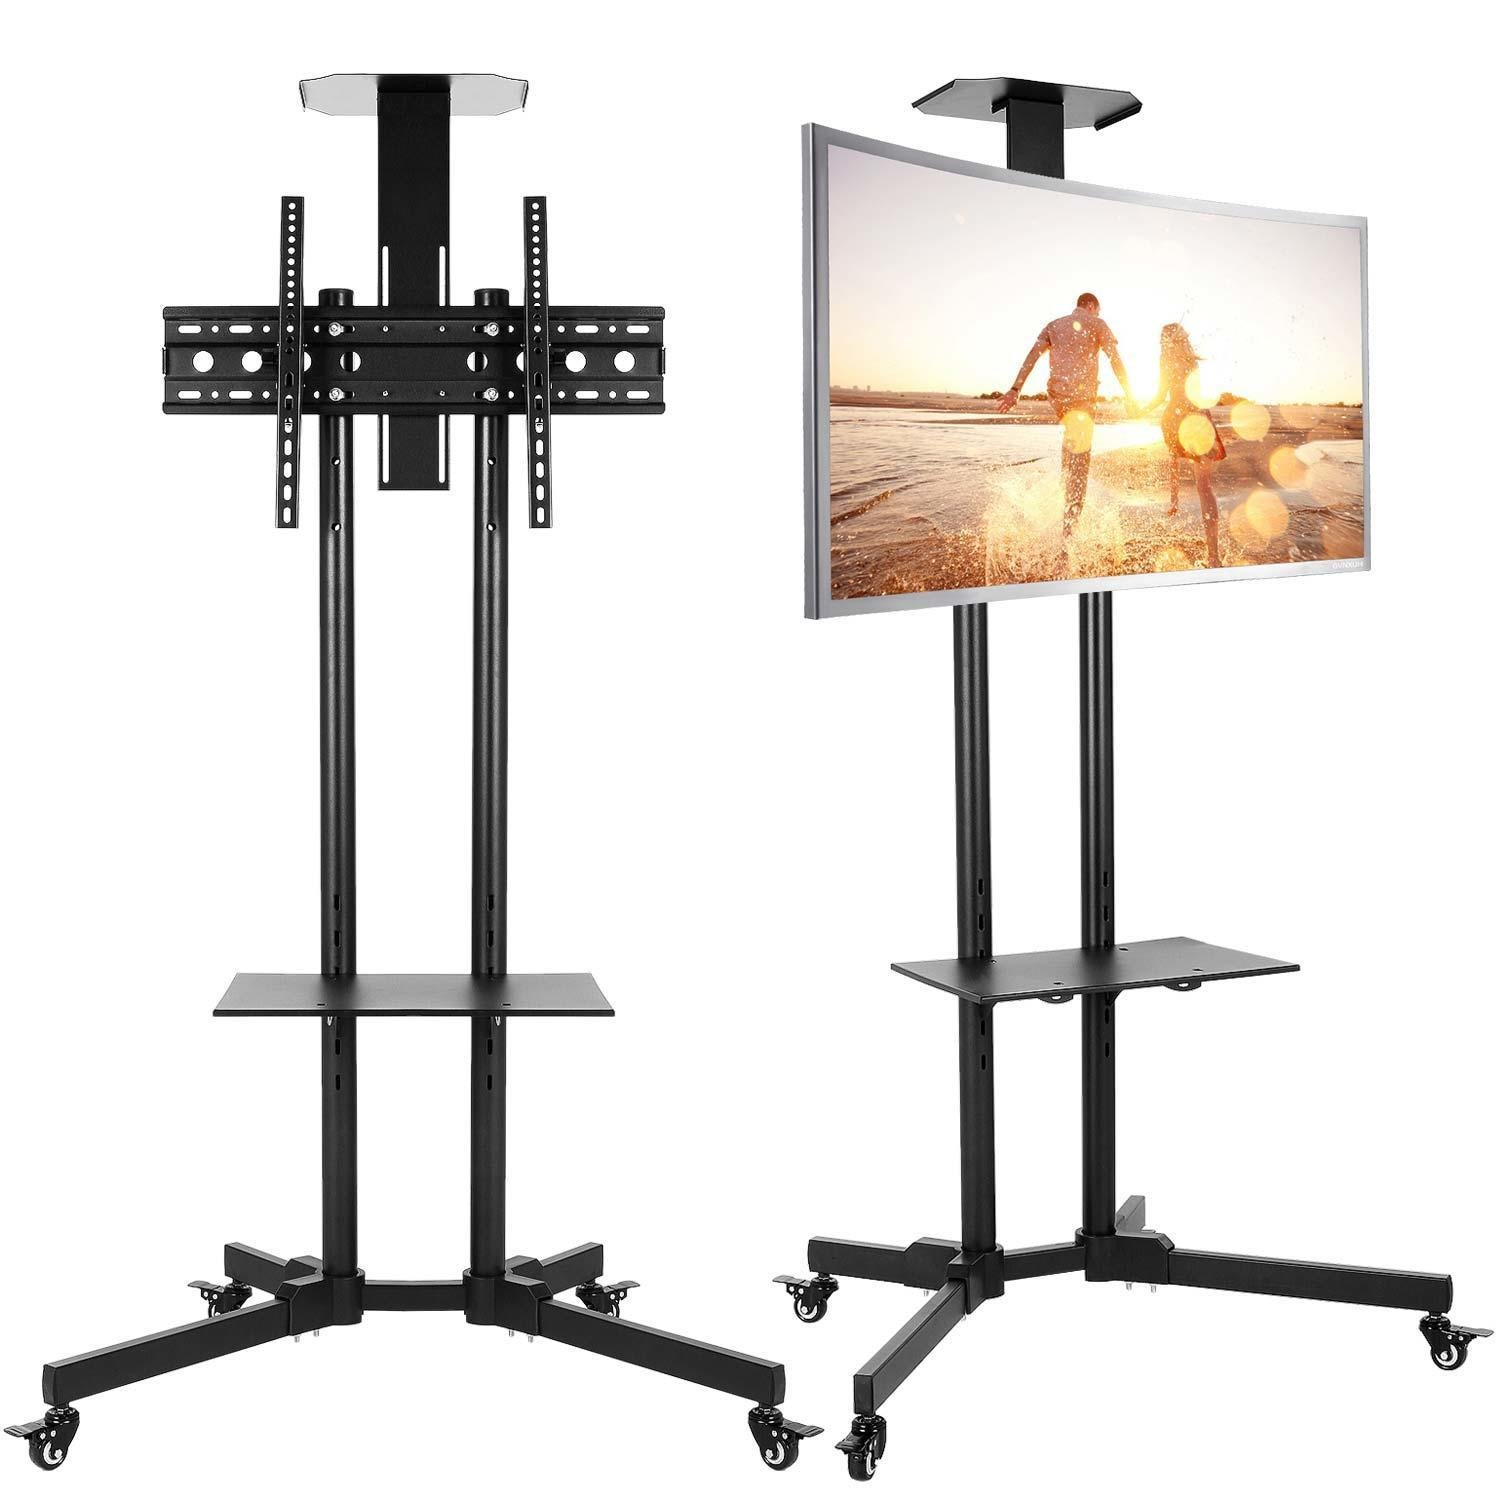 Leoneva Flat Panel Steel Rolling TV Stand with Adjustable TV Cart Shelf, Lockable Wheels and 32''-65'' Mobile Screen LCD LED Plasma